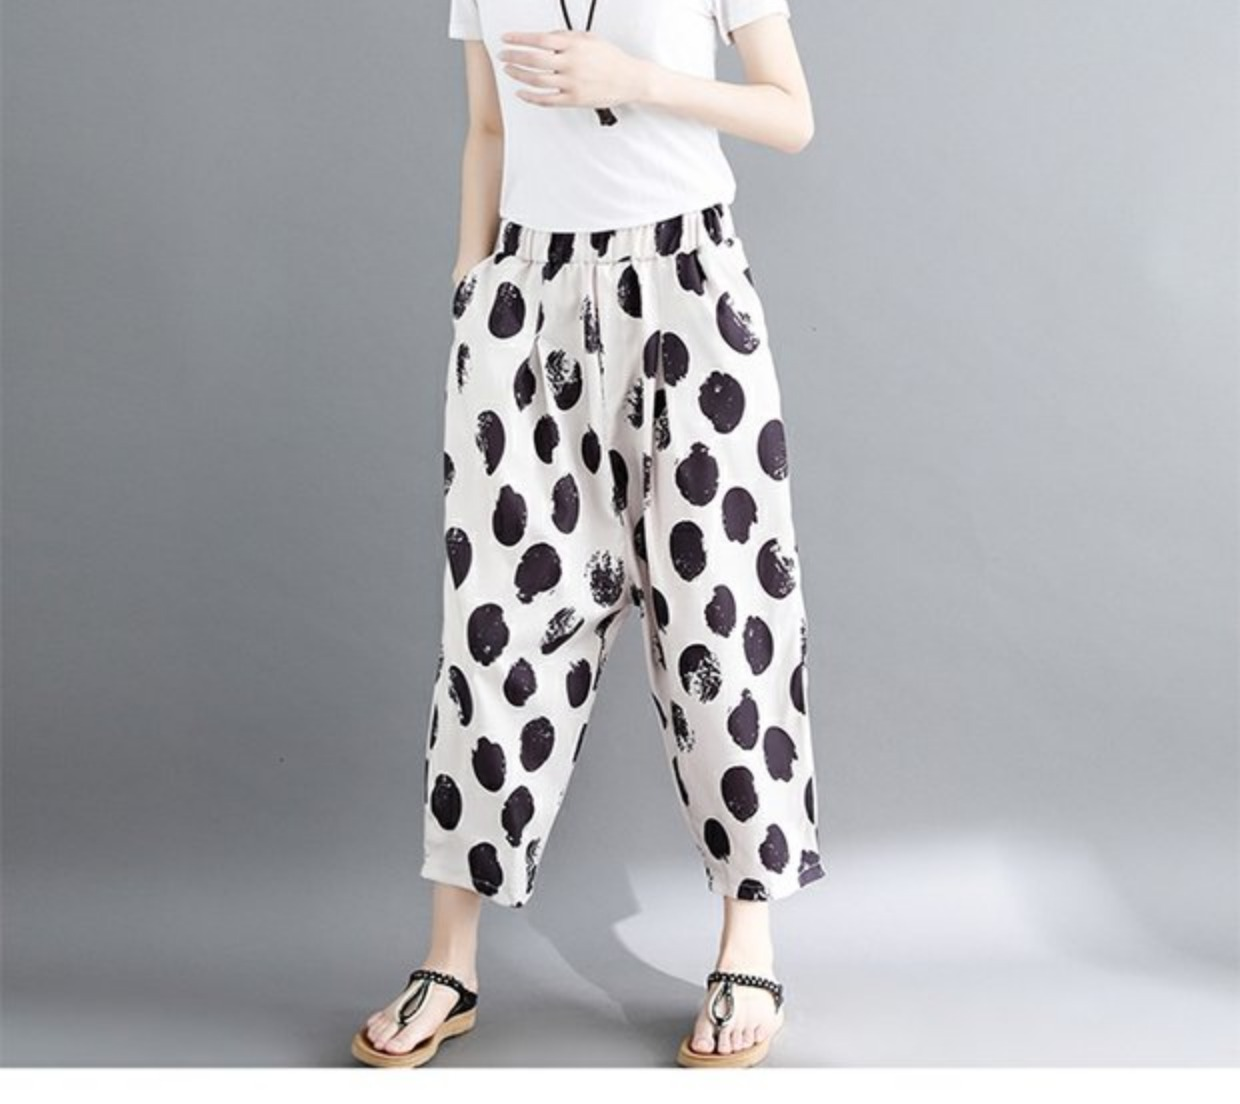 women white and black dot harem pants 2018 summer new loose fashion high-waist button fly female trousers pant 9